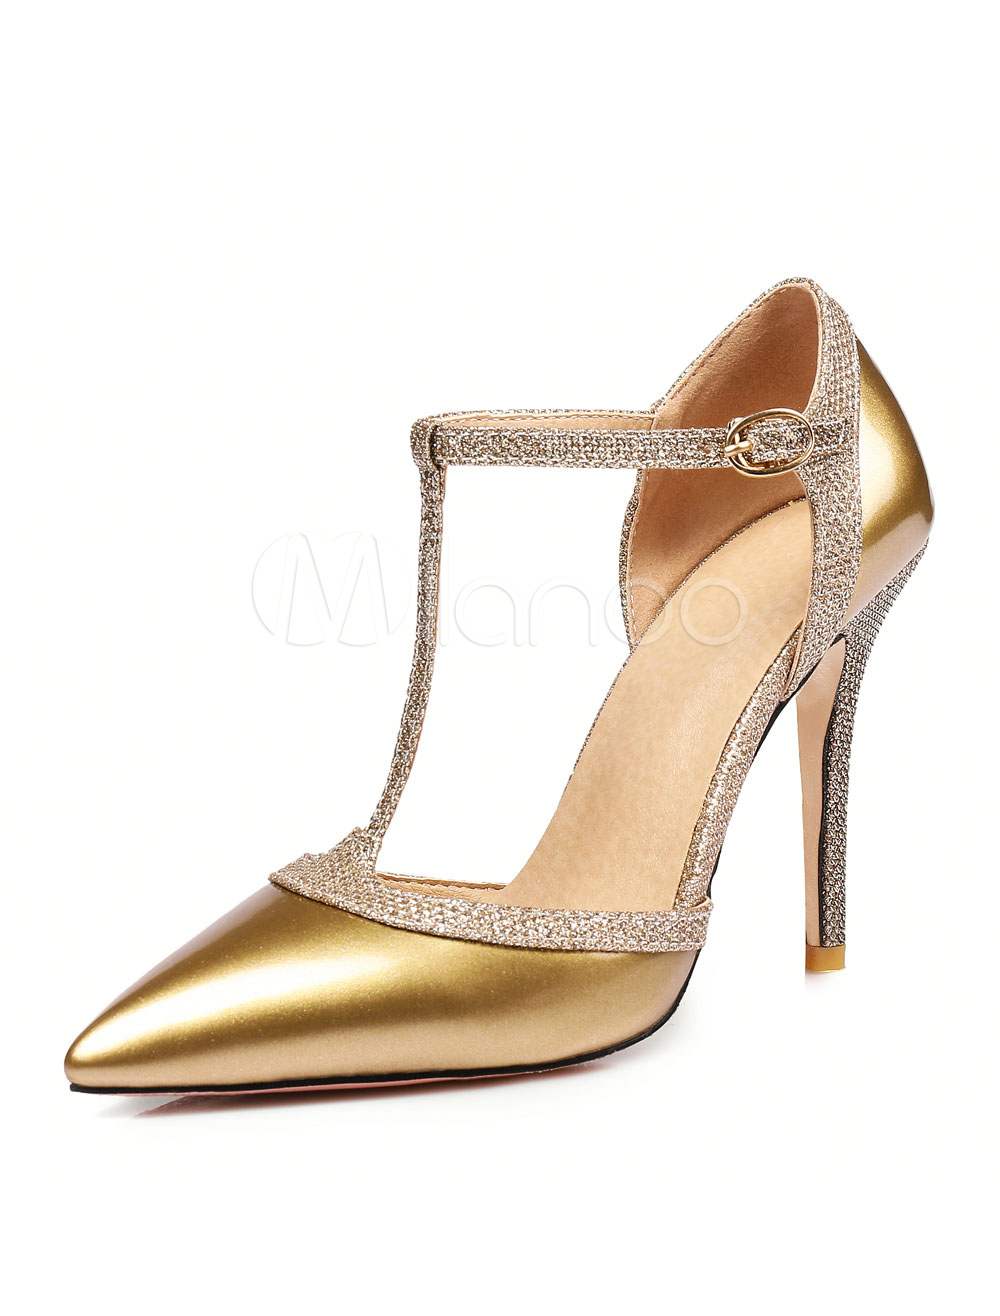 Buy Gold High Heels Pointed Toe T Type Buckle Detail Shoes Women Dress Shoes for $37.99 in Milanoo store